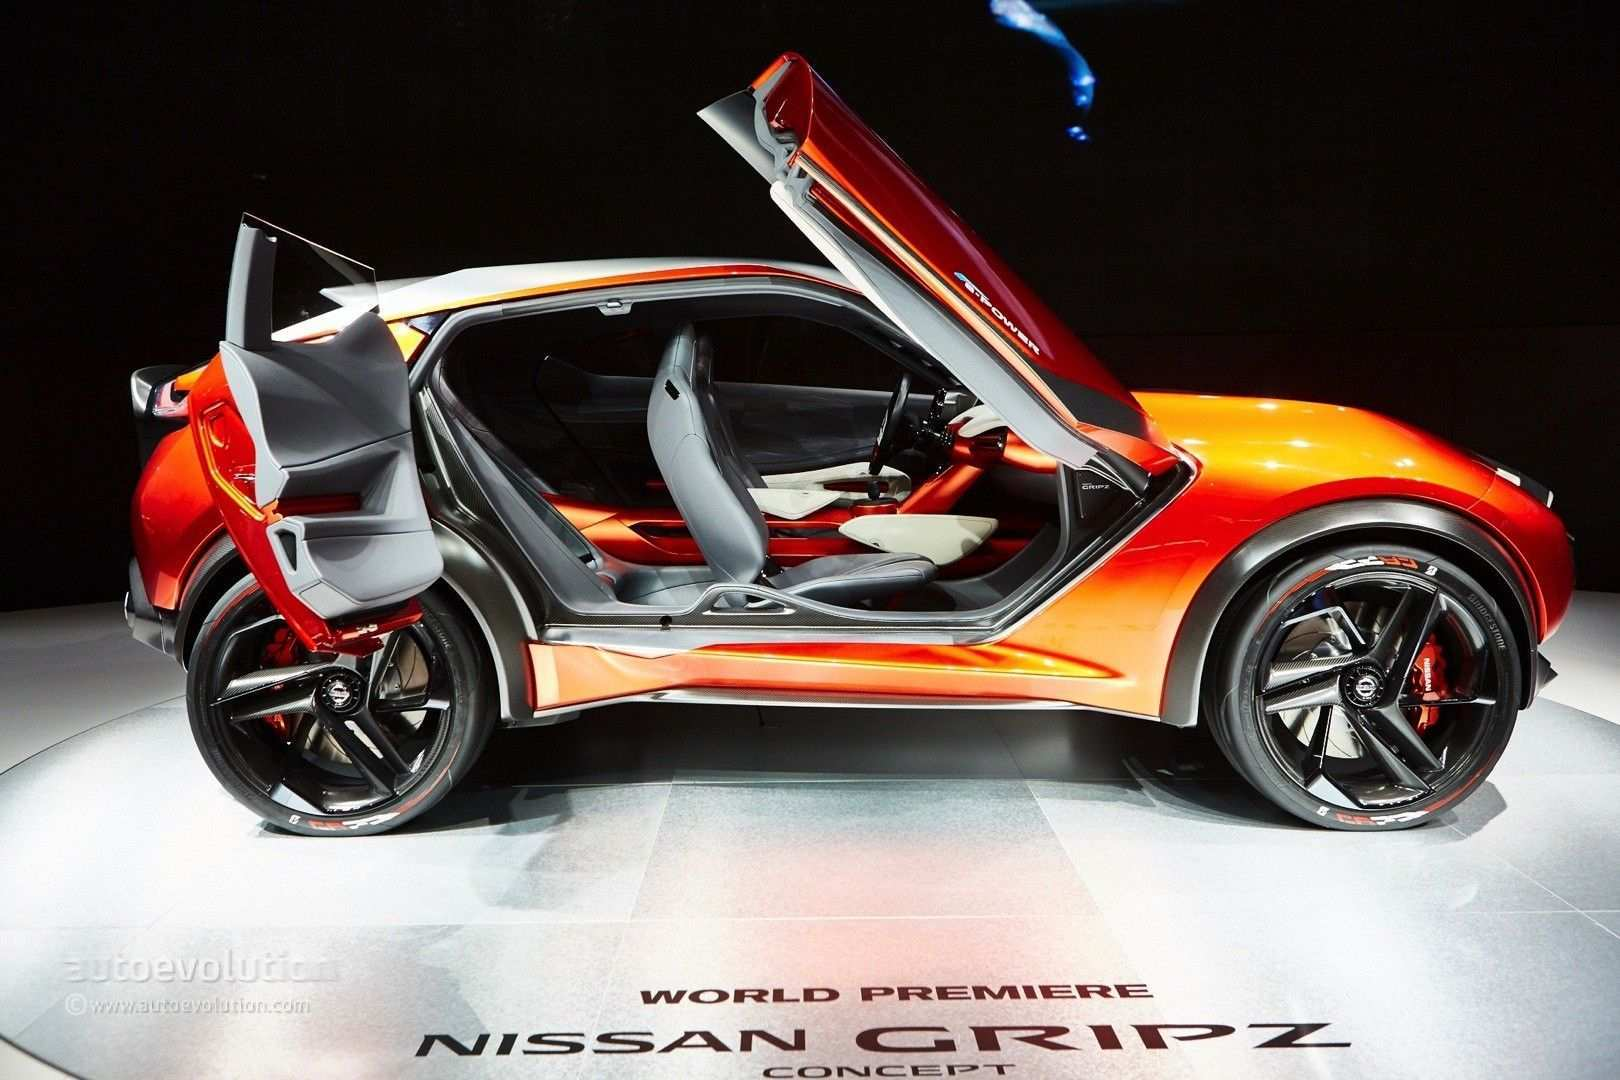 81 Gallery of Nissan Juke Nismo 2020 New Concept for Nissan Juke Nismo 2020